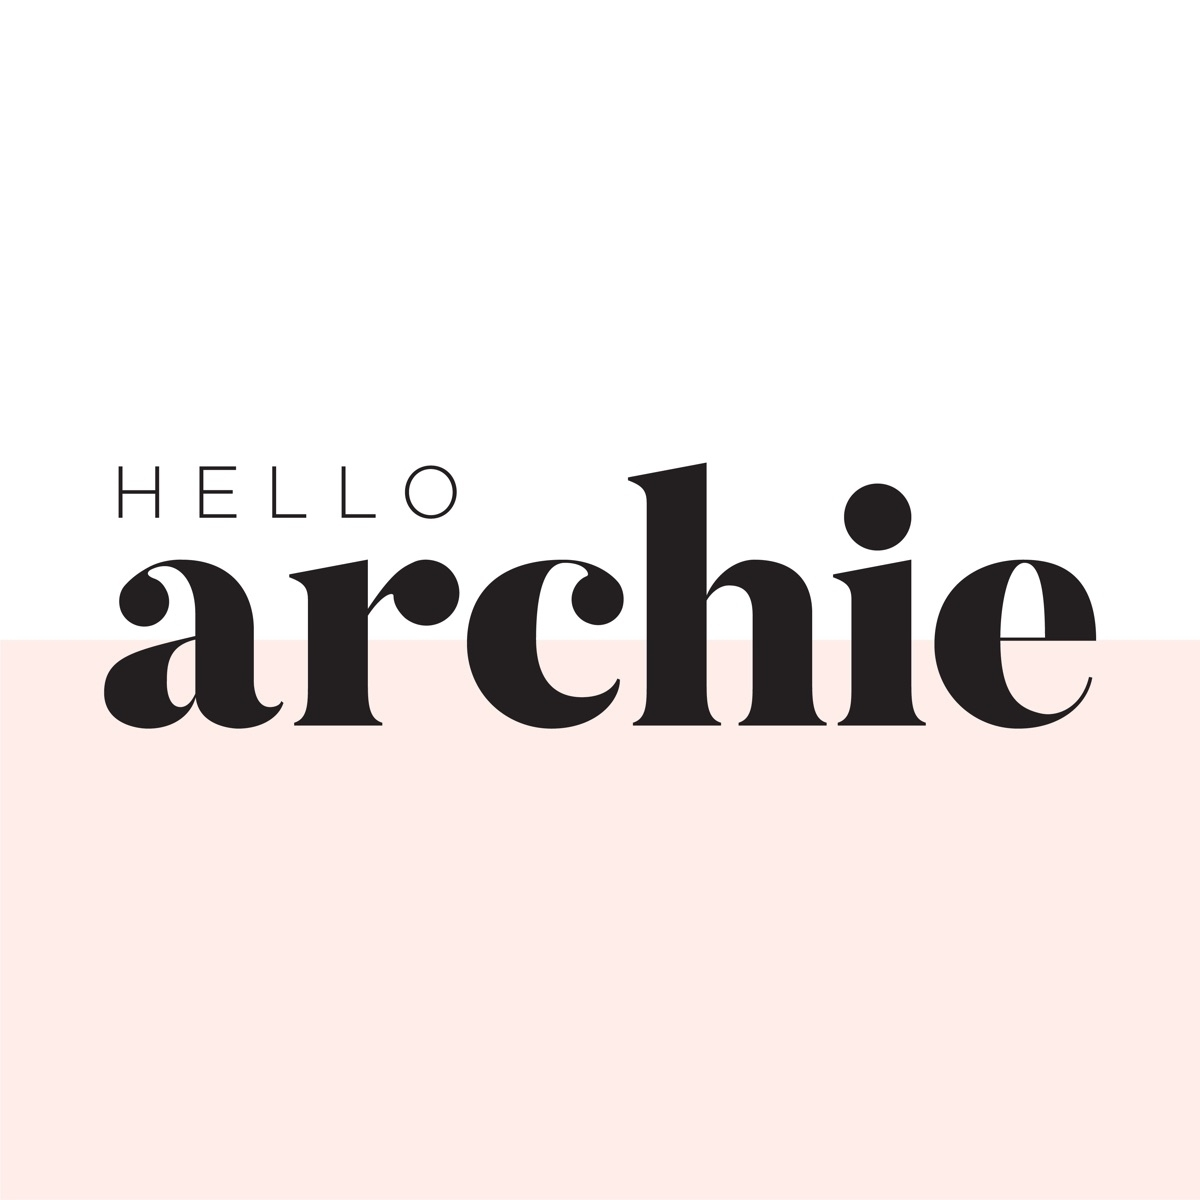 @helloarchie Cover Image